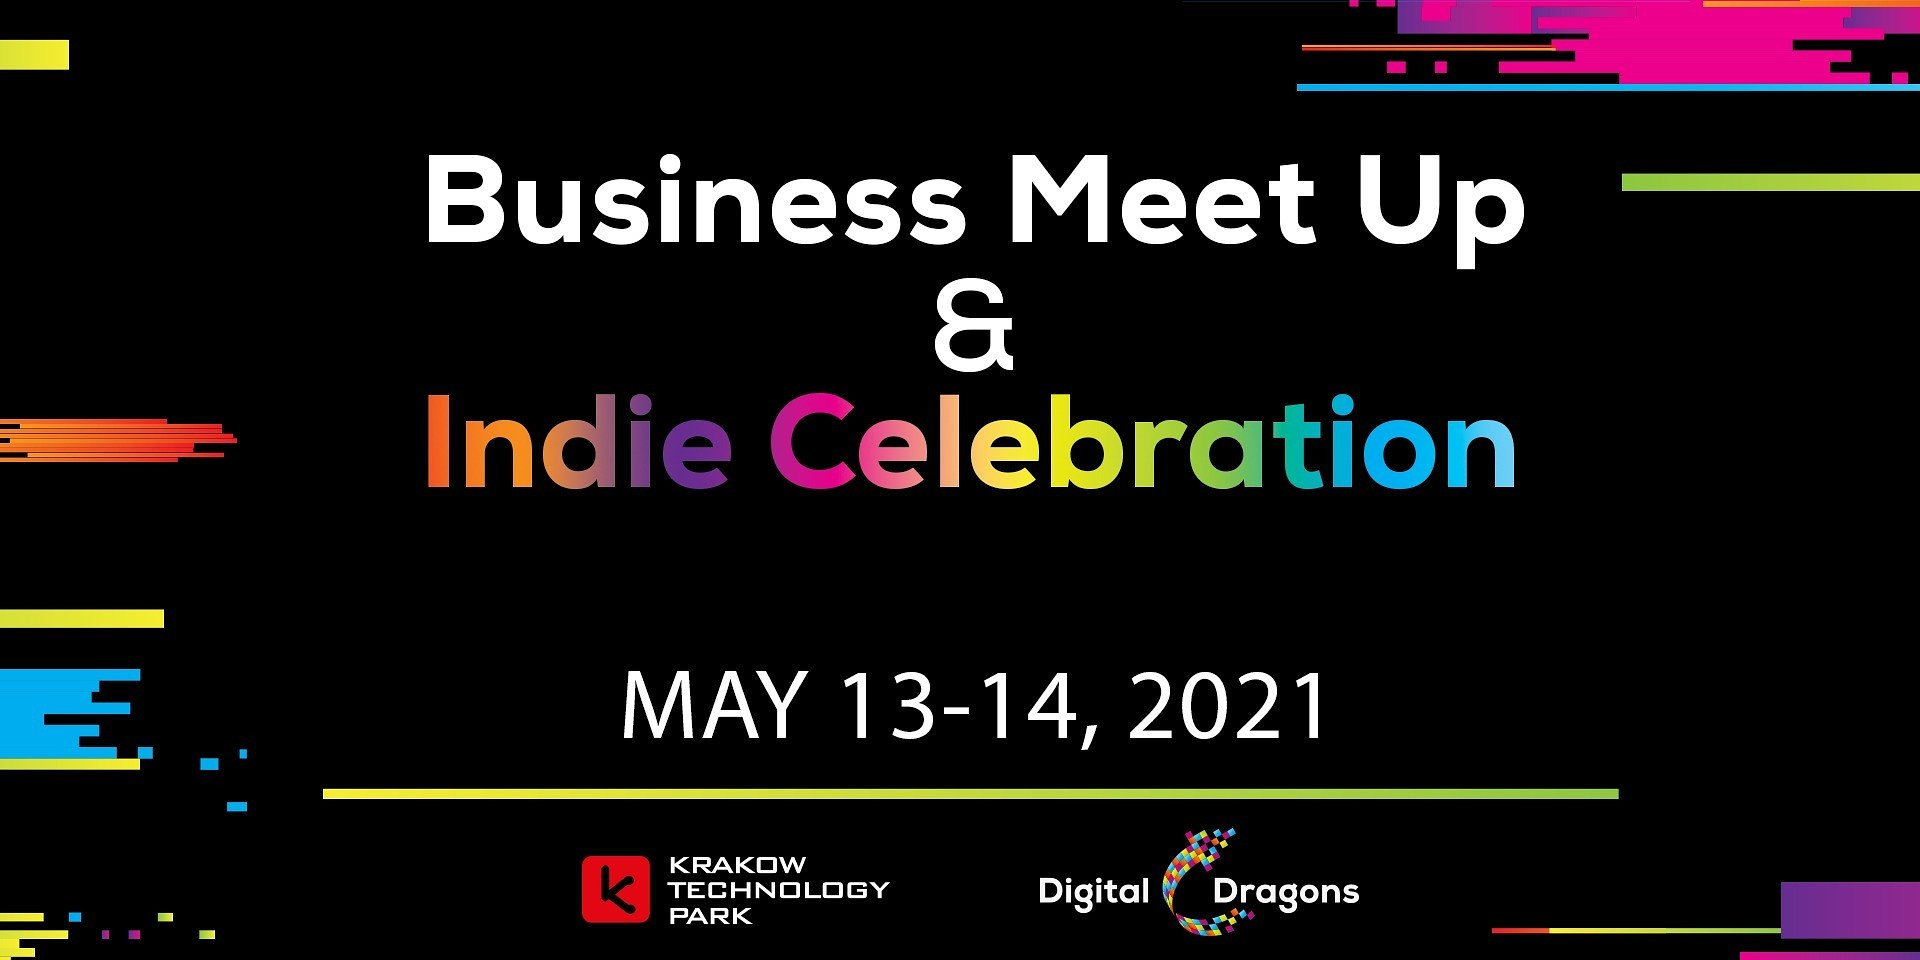 Digital Dragons Indie Celebration and Business Meet Up start tomorrow!